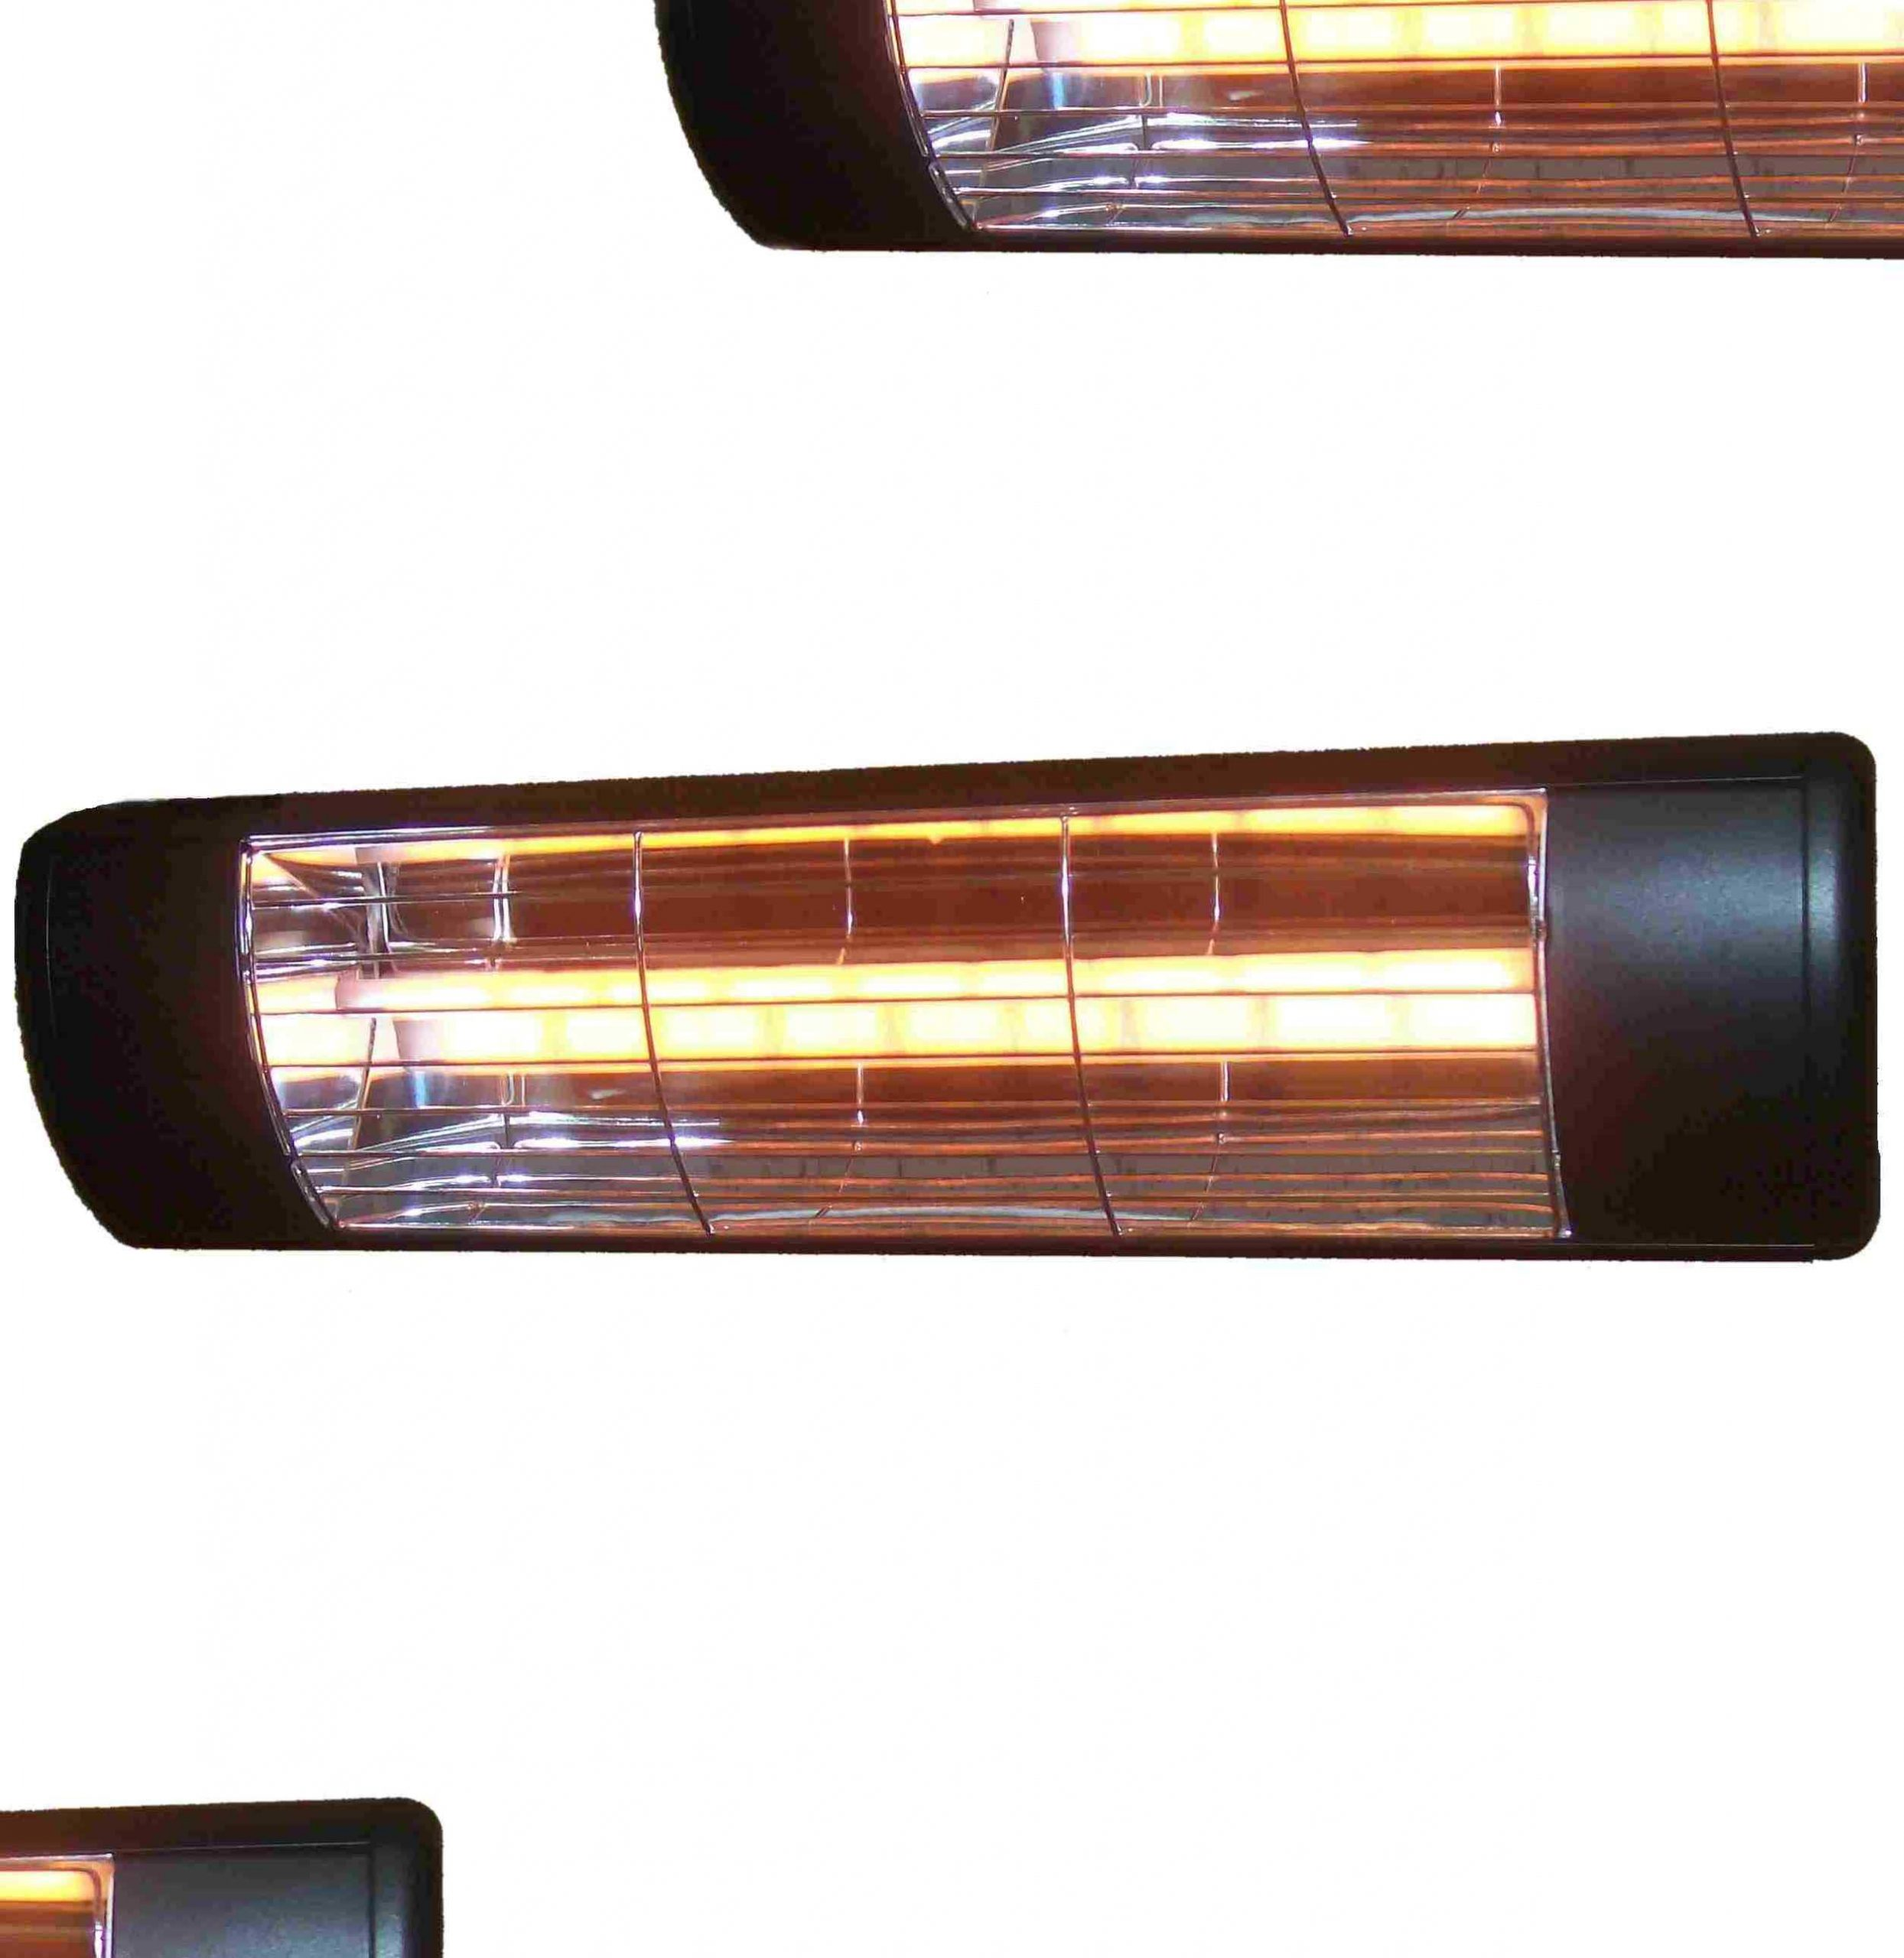 1.5kW Summerglow Heater - Black with gold element